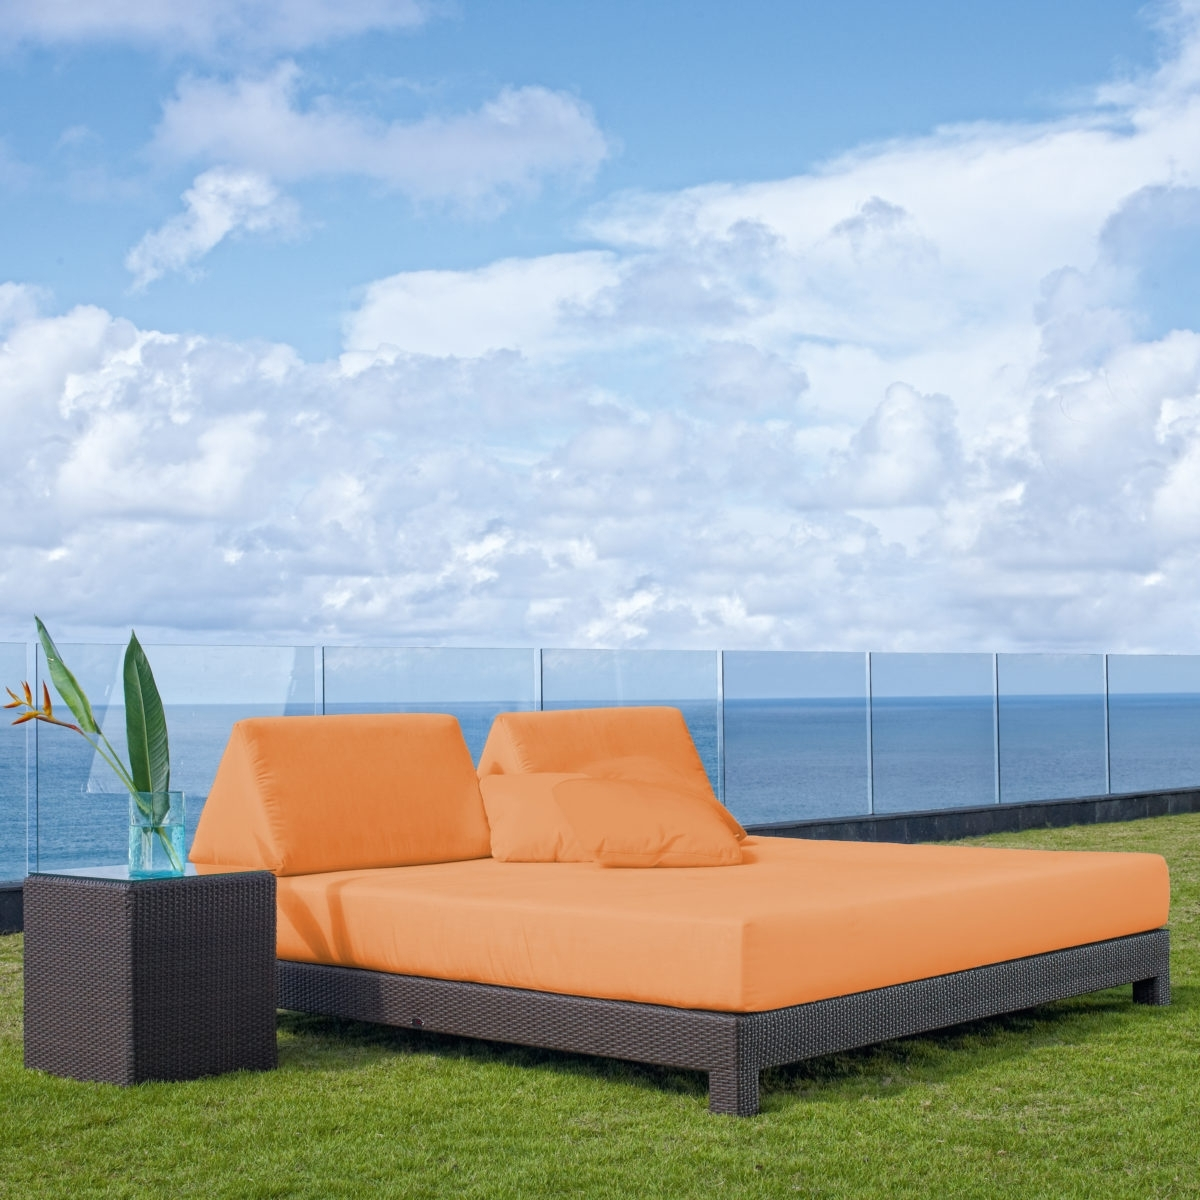 Image of: Daybed Couture Intended For Outdoor Hospitality Furniture